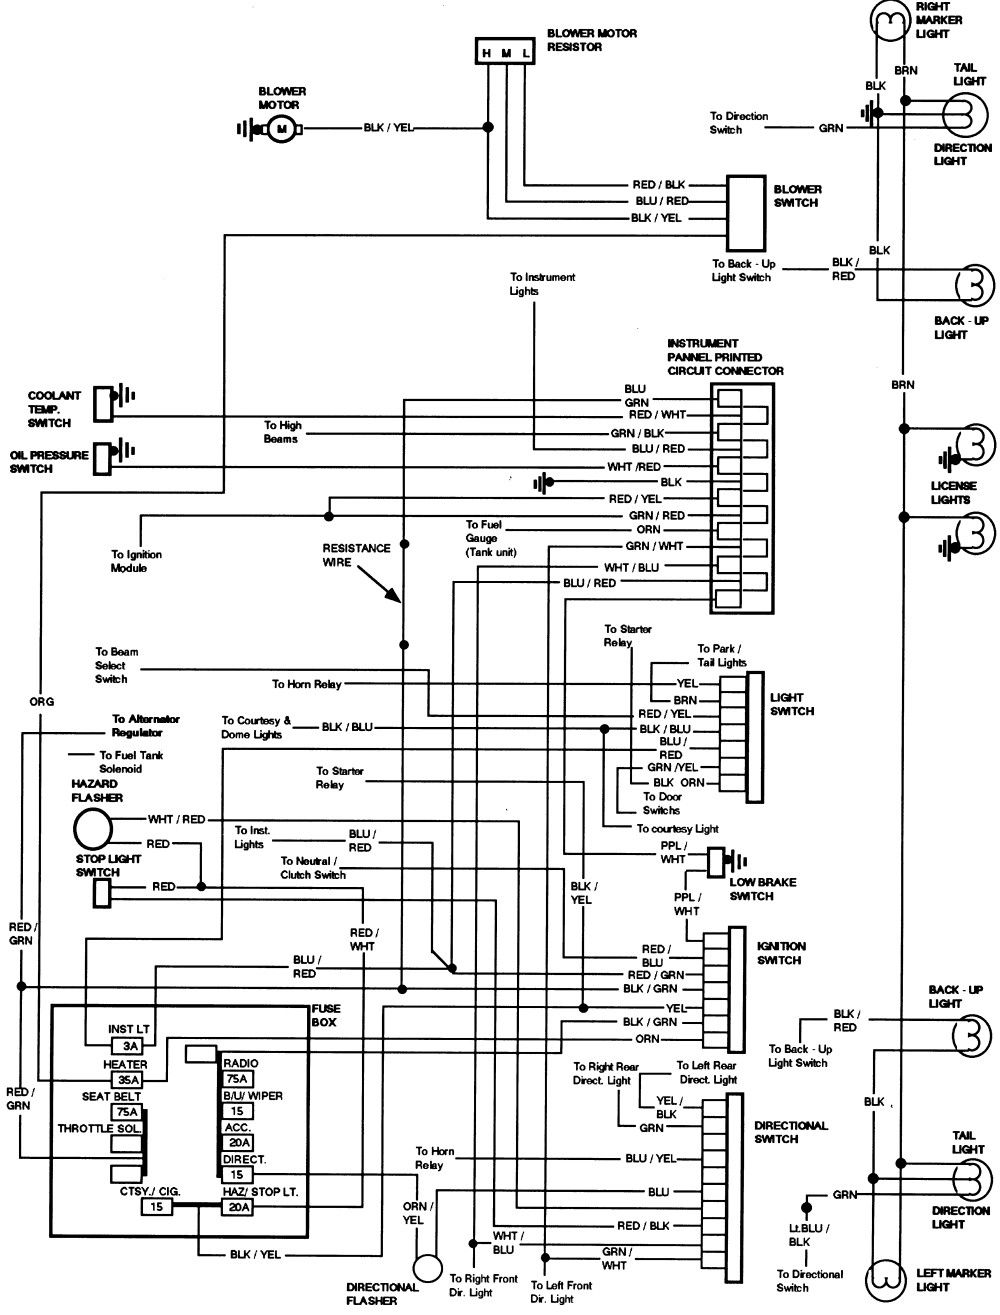 Ford Ignition Switch Wiring Diagram Ford F250 Ford F350 Diesel Ford Truck